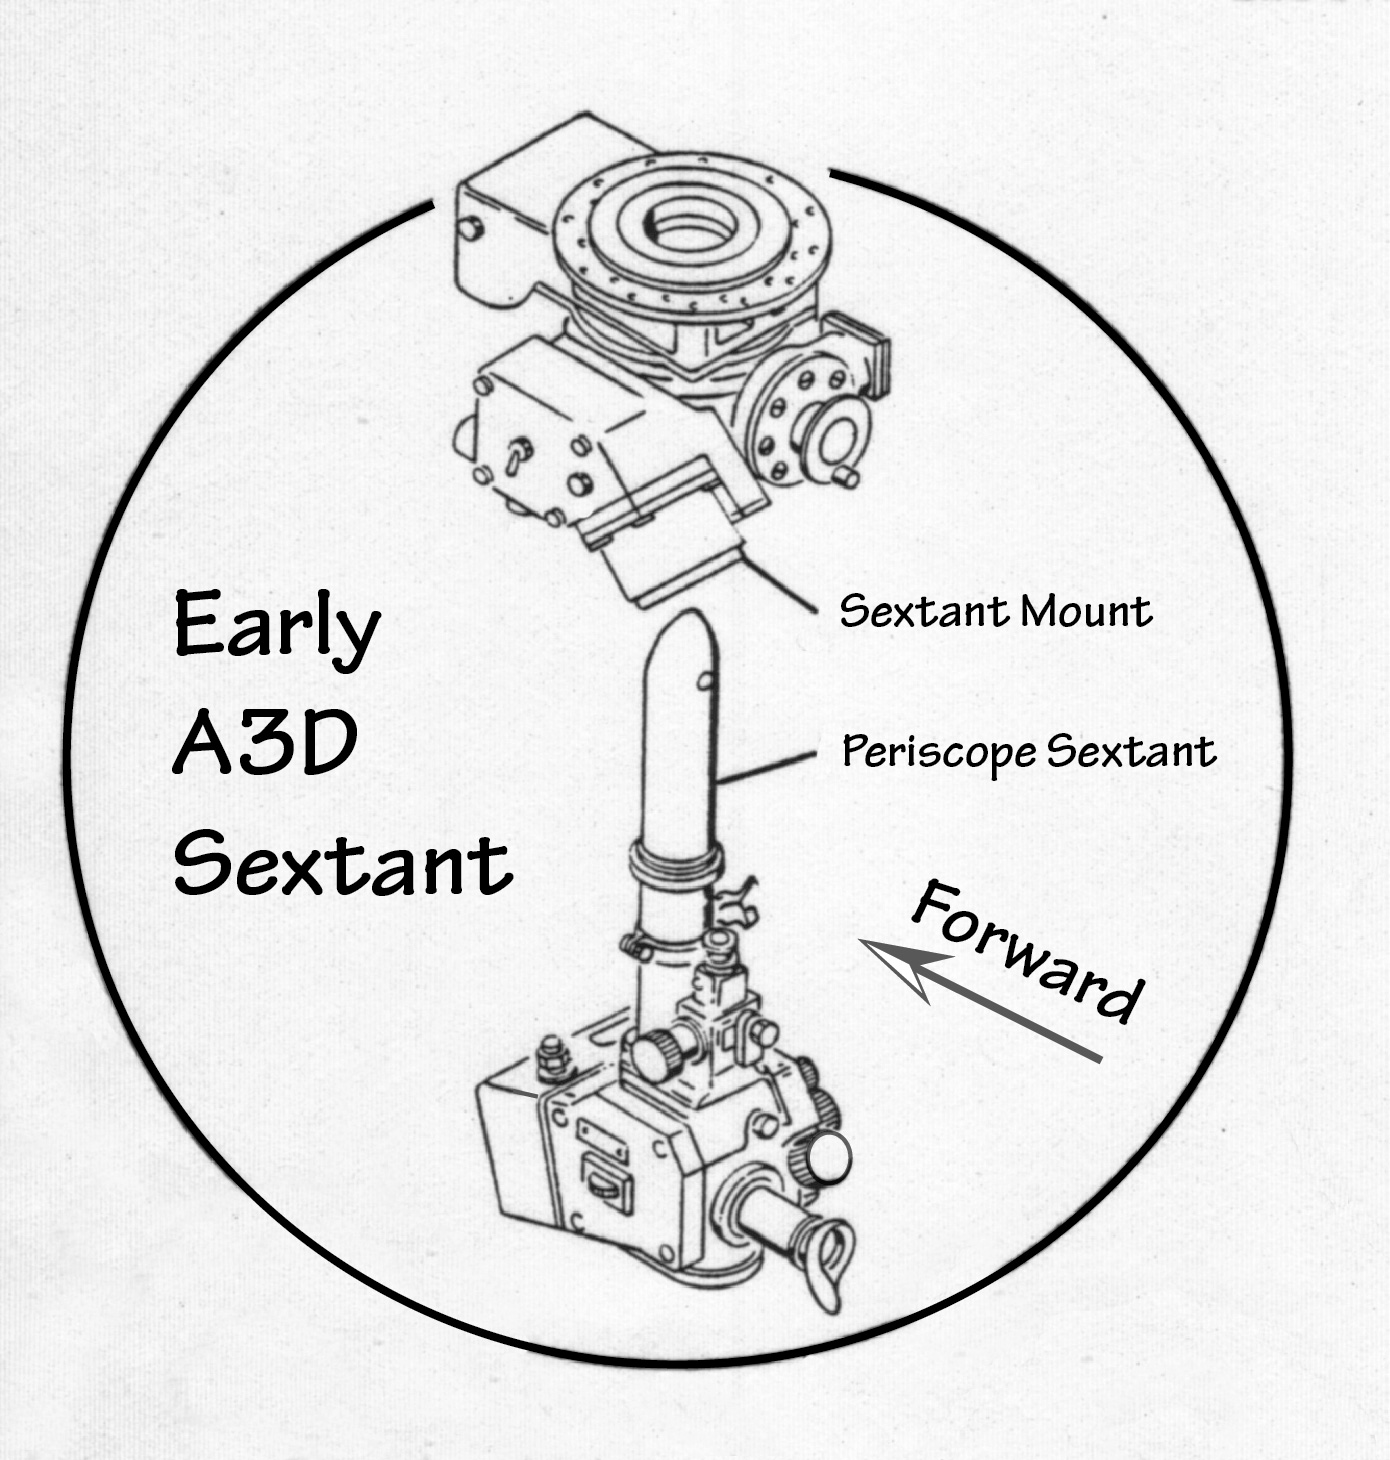 medium resolution of when sights were to be taken the periscope sextant was inserted into the mount the tip stuck out about an inch above the skin on the airplane